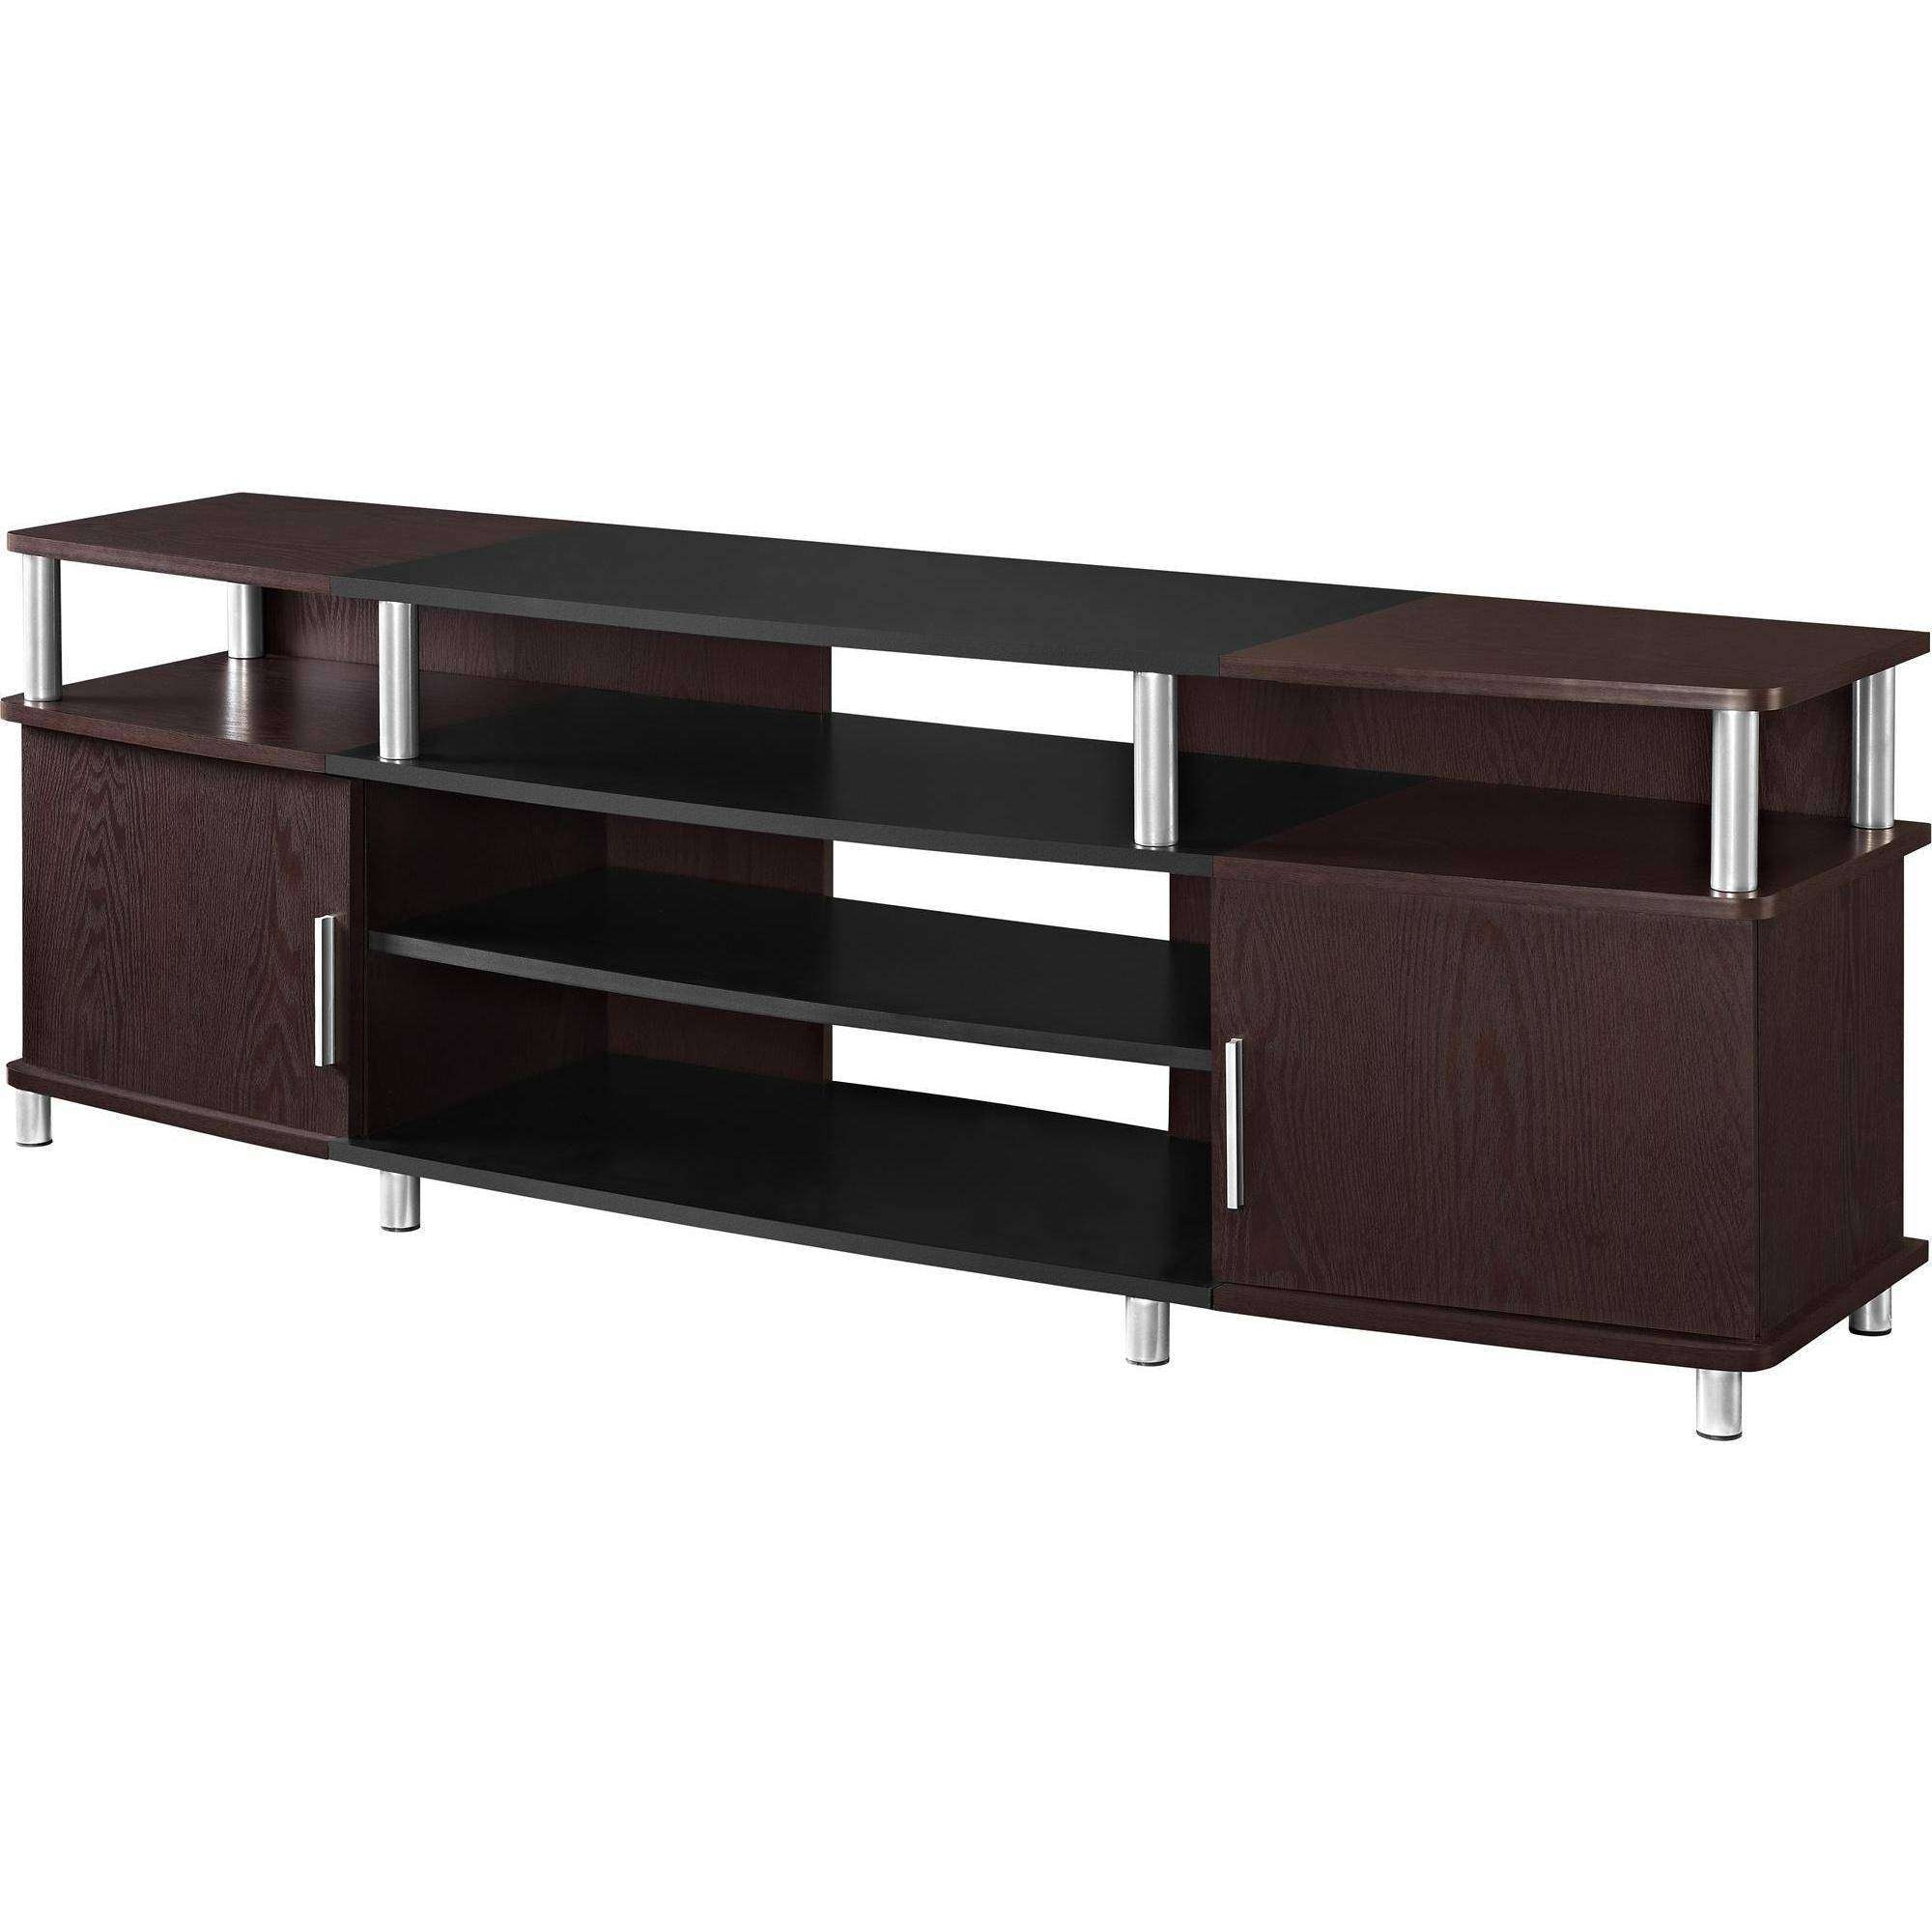 Furnitures Tv Stand For Inch Flat Screen Ameriwood Home Carson Tvs In Tv Stands For 70 Inch Tvs (View 9 of 20)